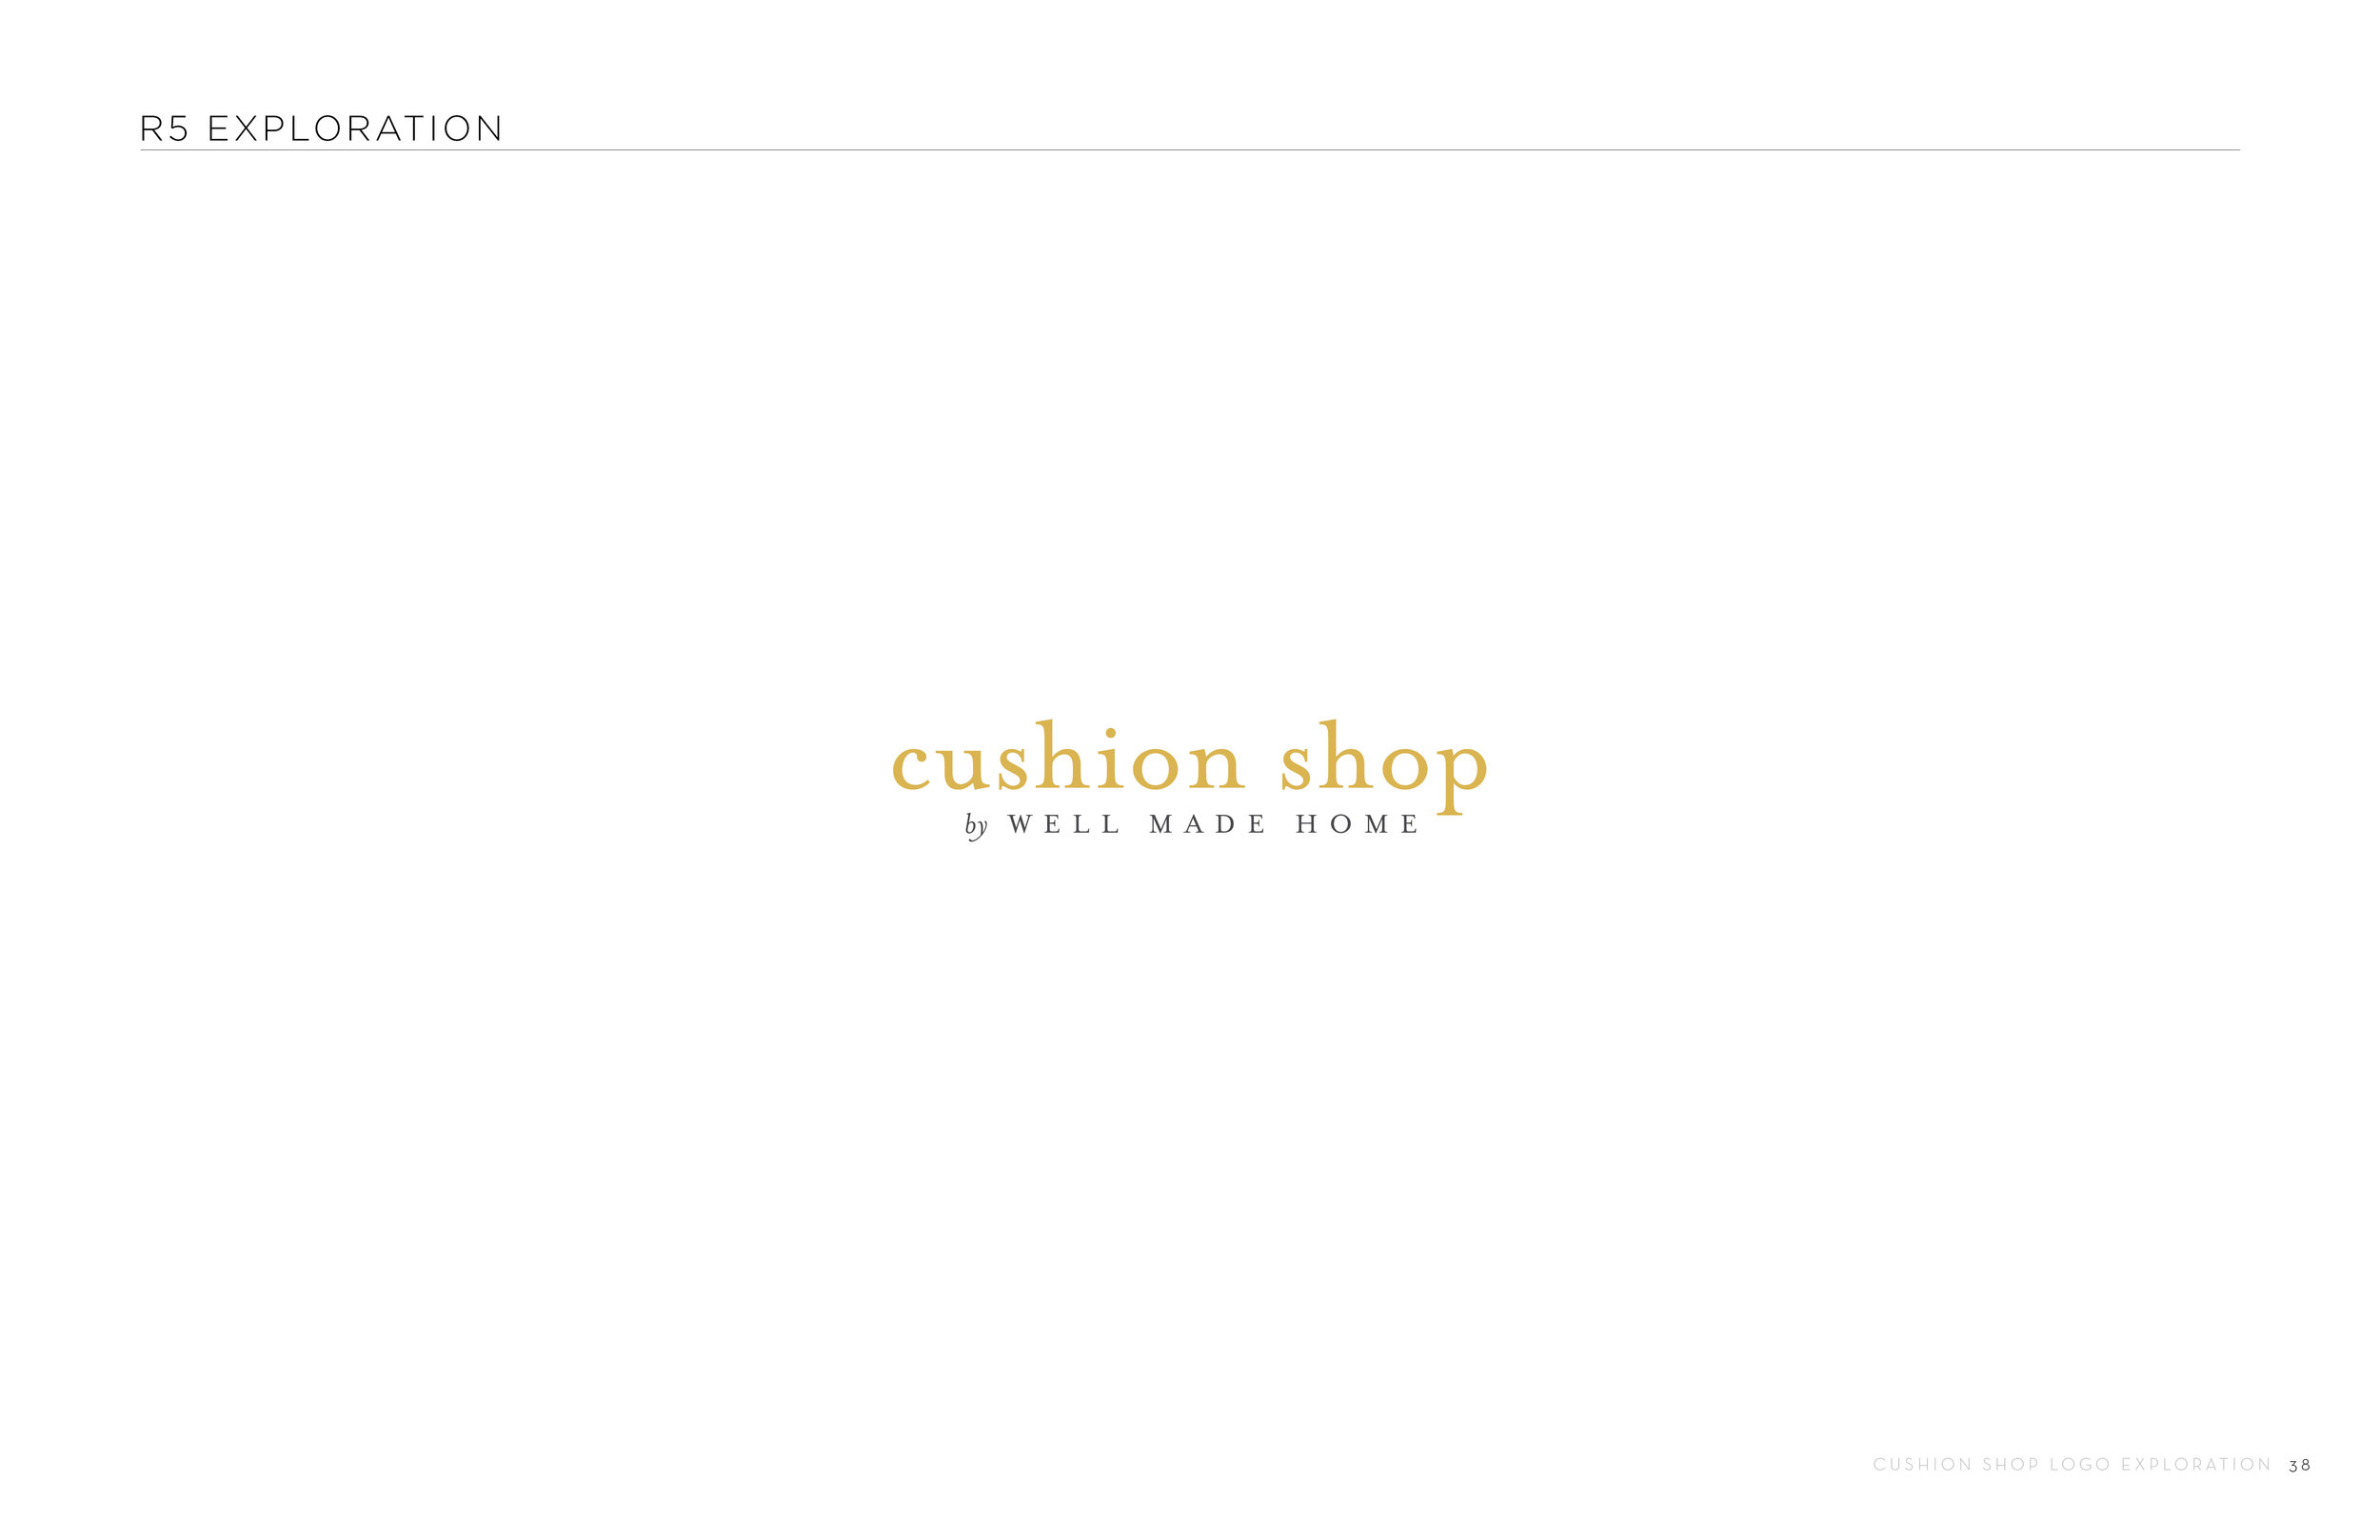 Cushion Shop_Logo Concepts_R10_38.jpg